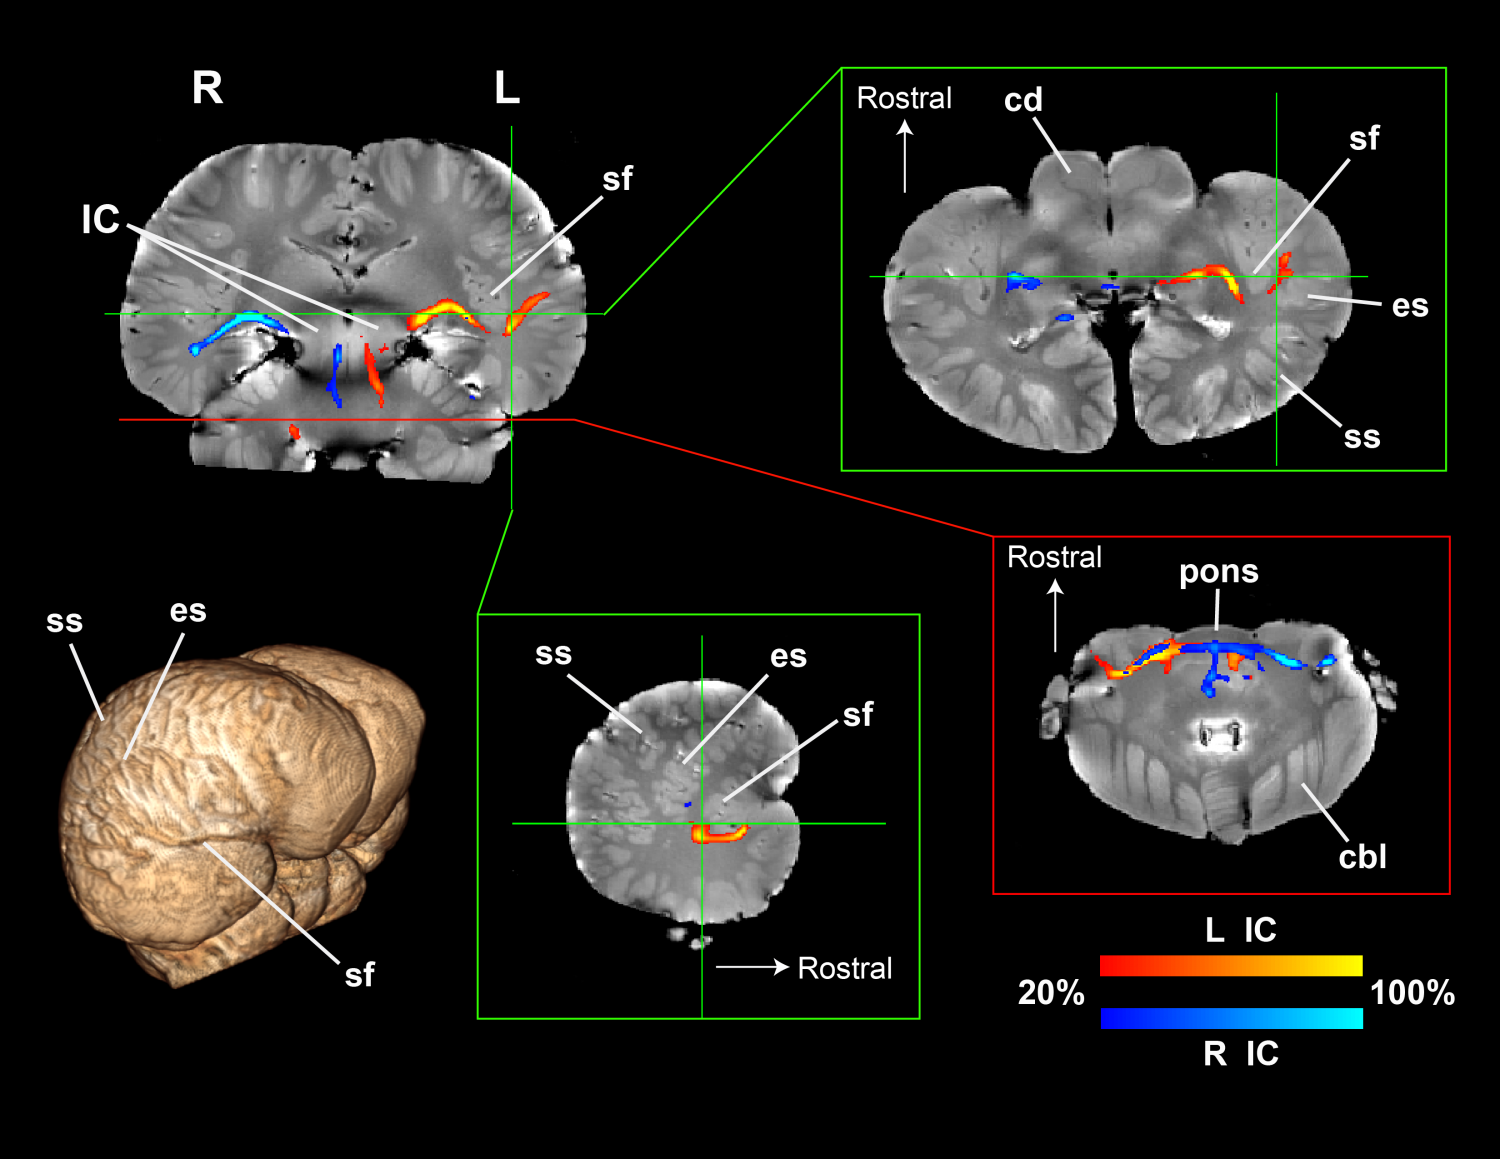 First Images Of Dolphin Brain Circuitry Hint At How They Sense Sound Wiring Diagrams Probabilistic Tractography In A Was Revealed Used Novel Technique Diffusion Tensor Imaging Dti Credit Image Via Gregory Berns